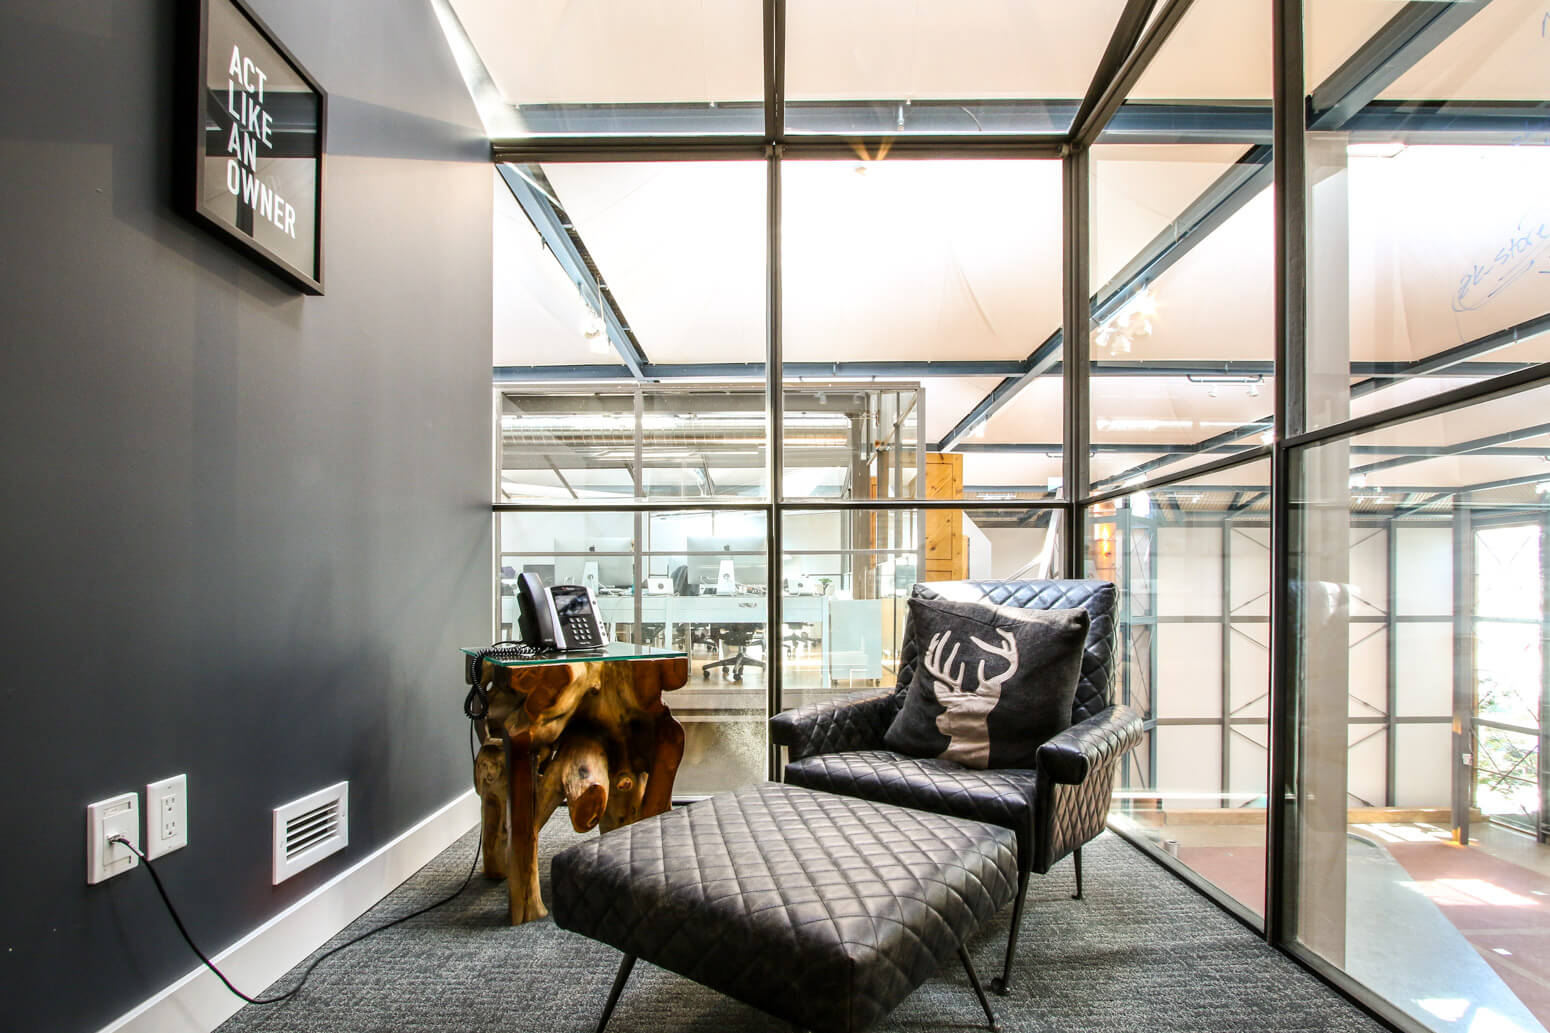 Shopify Waterloo Office Killer Spaces-22